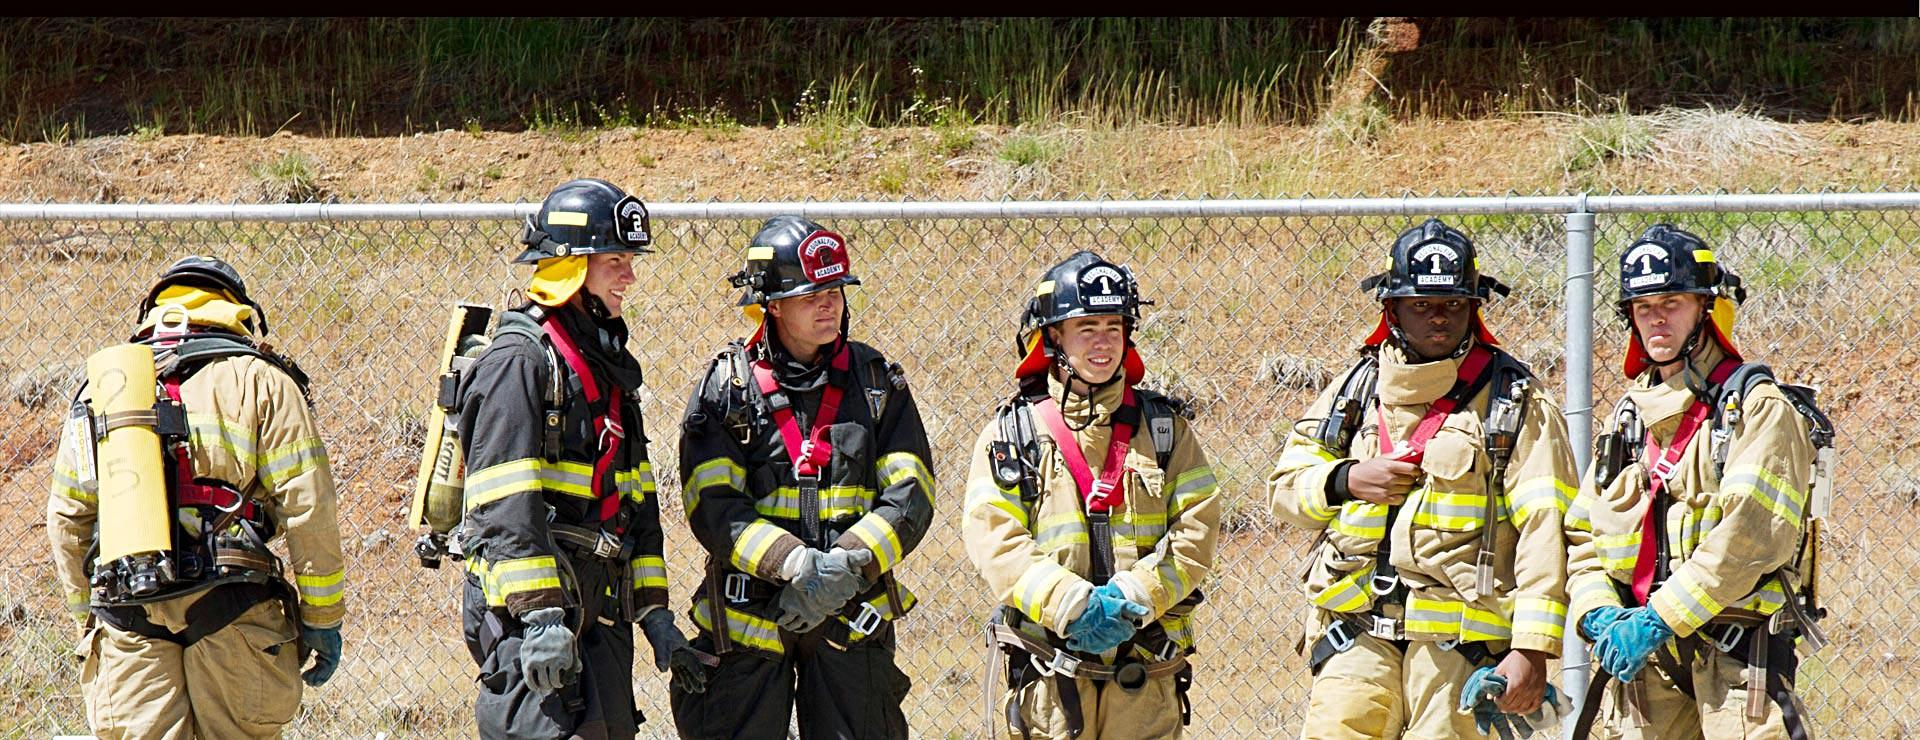 Fire Technology students in fire gear